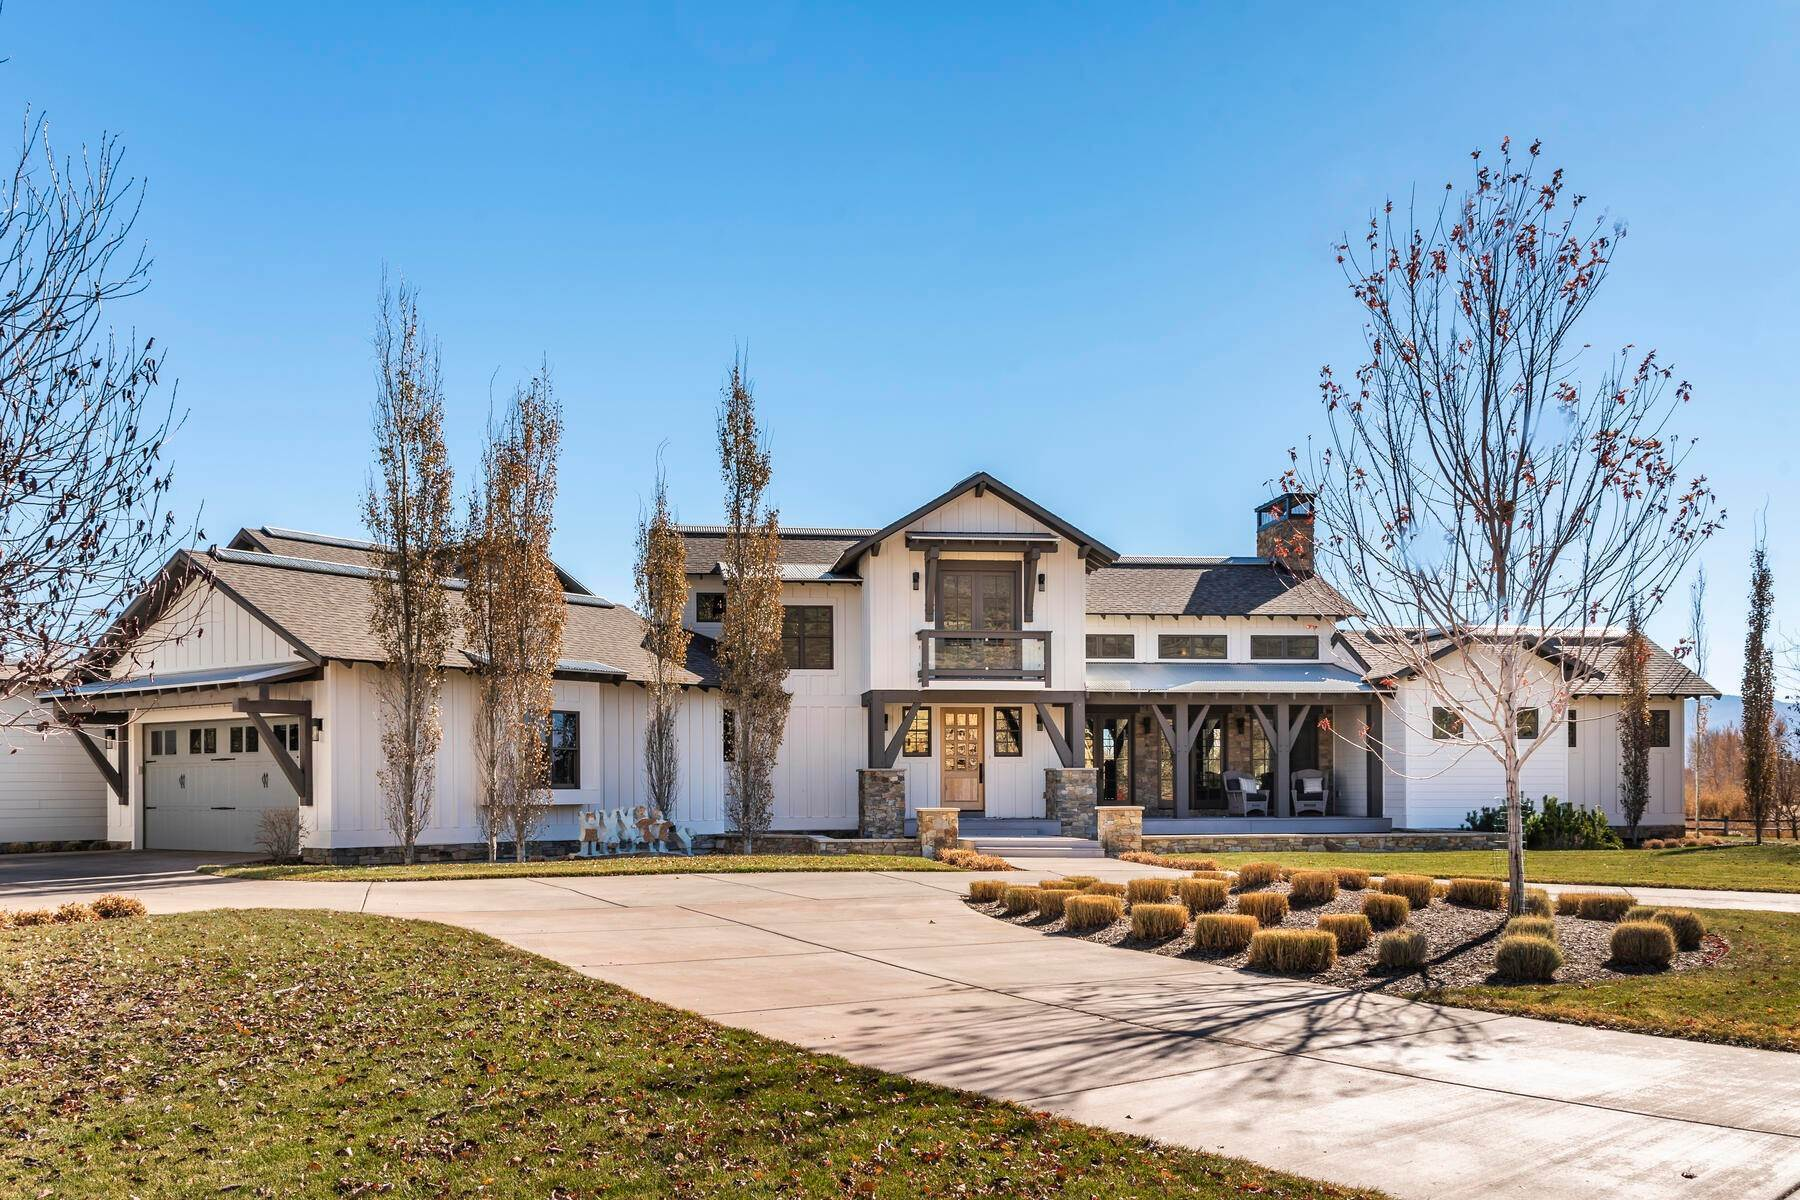 Single Family Homes for Sale at Picture-Perfect Contemporary Rustic Elegance on the Provo River 2370 N River Meadows Parkway Midway, Utah 84049 United States